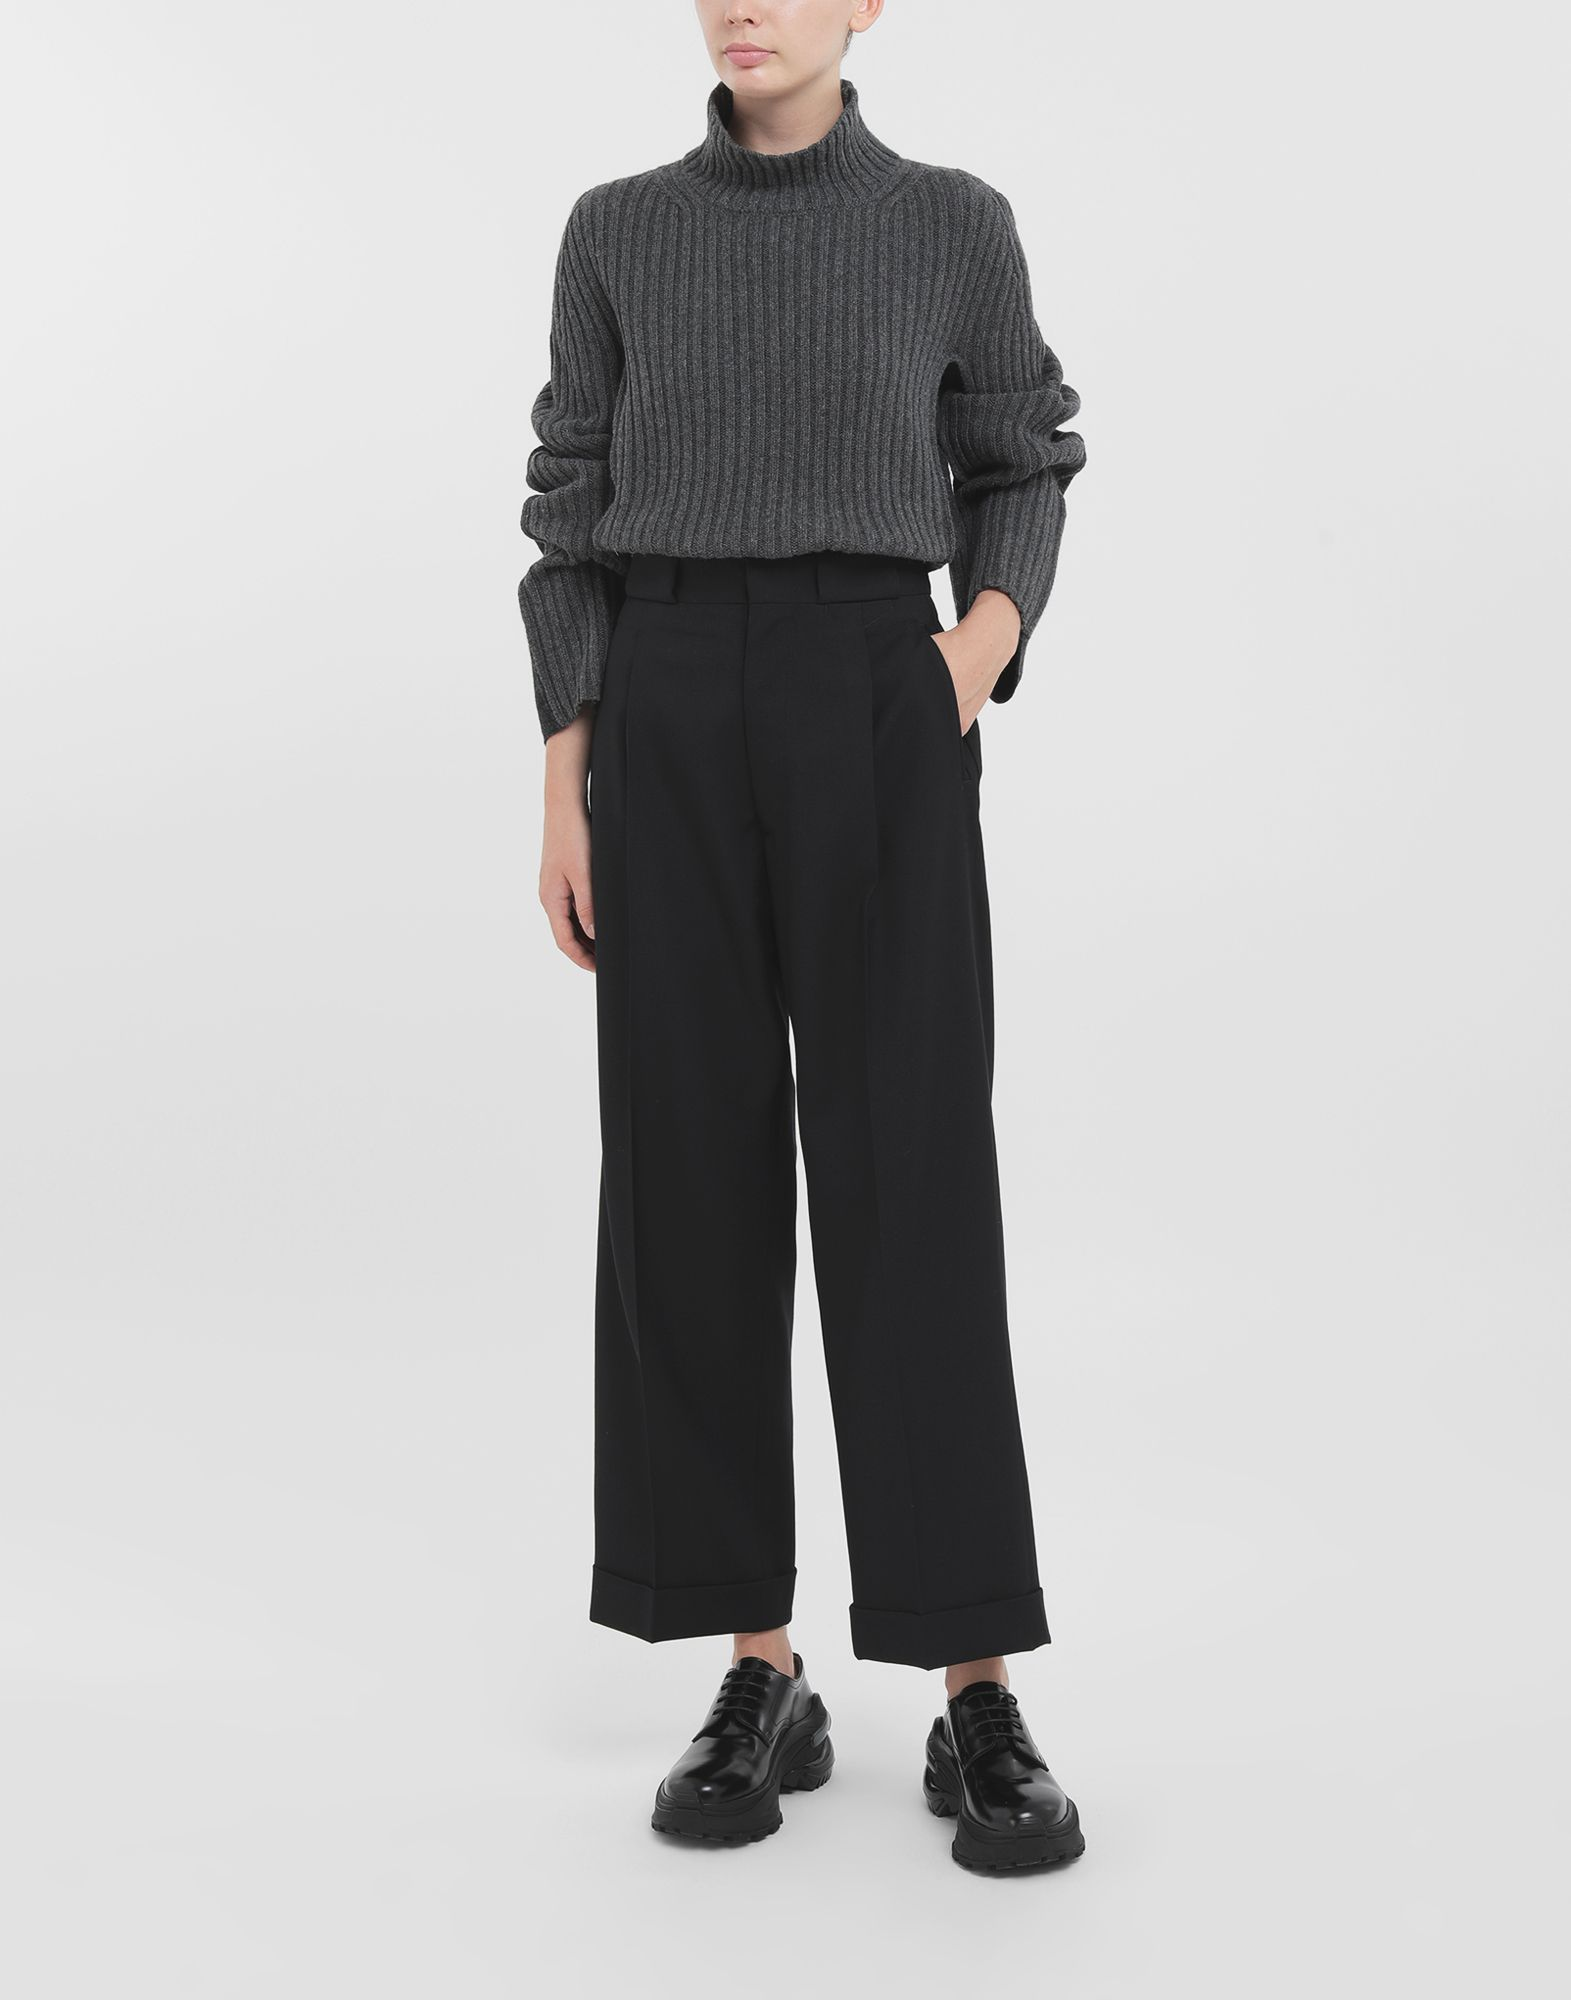 MAISON MARGIELA Striped tailored pants Casual pants Woman b